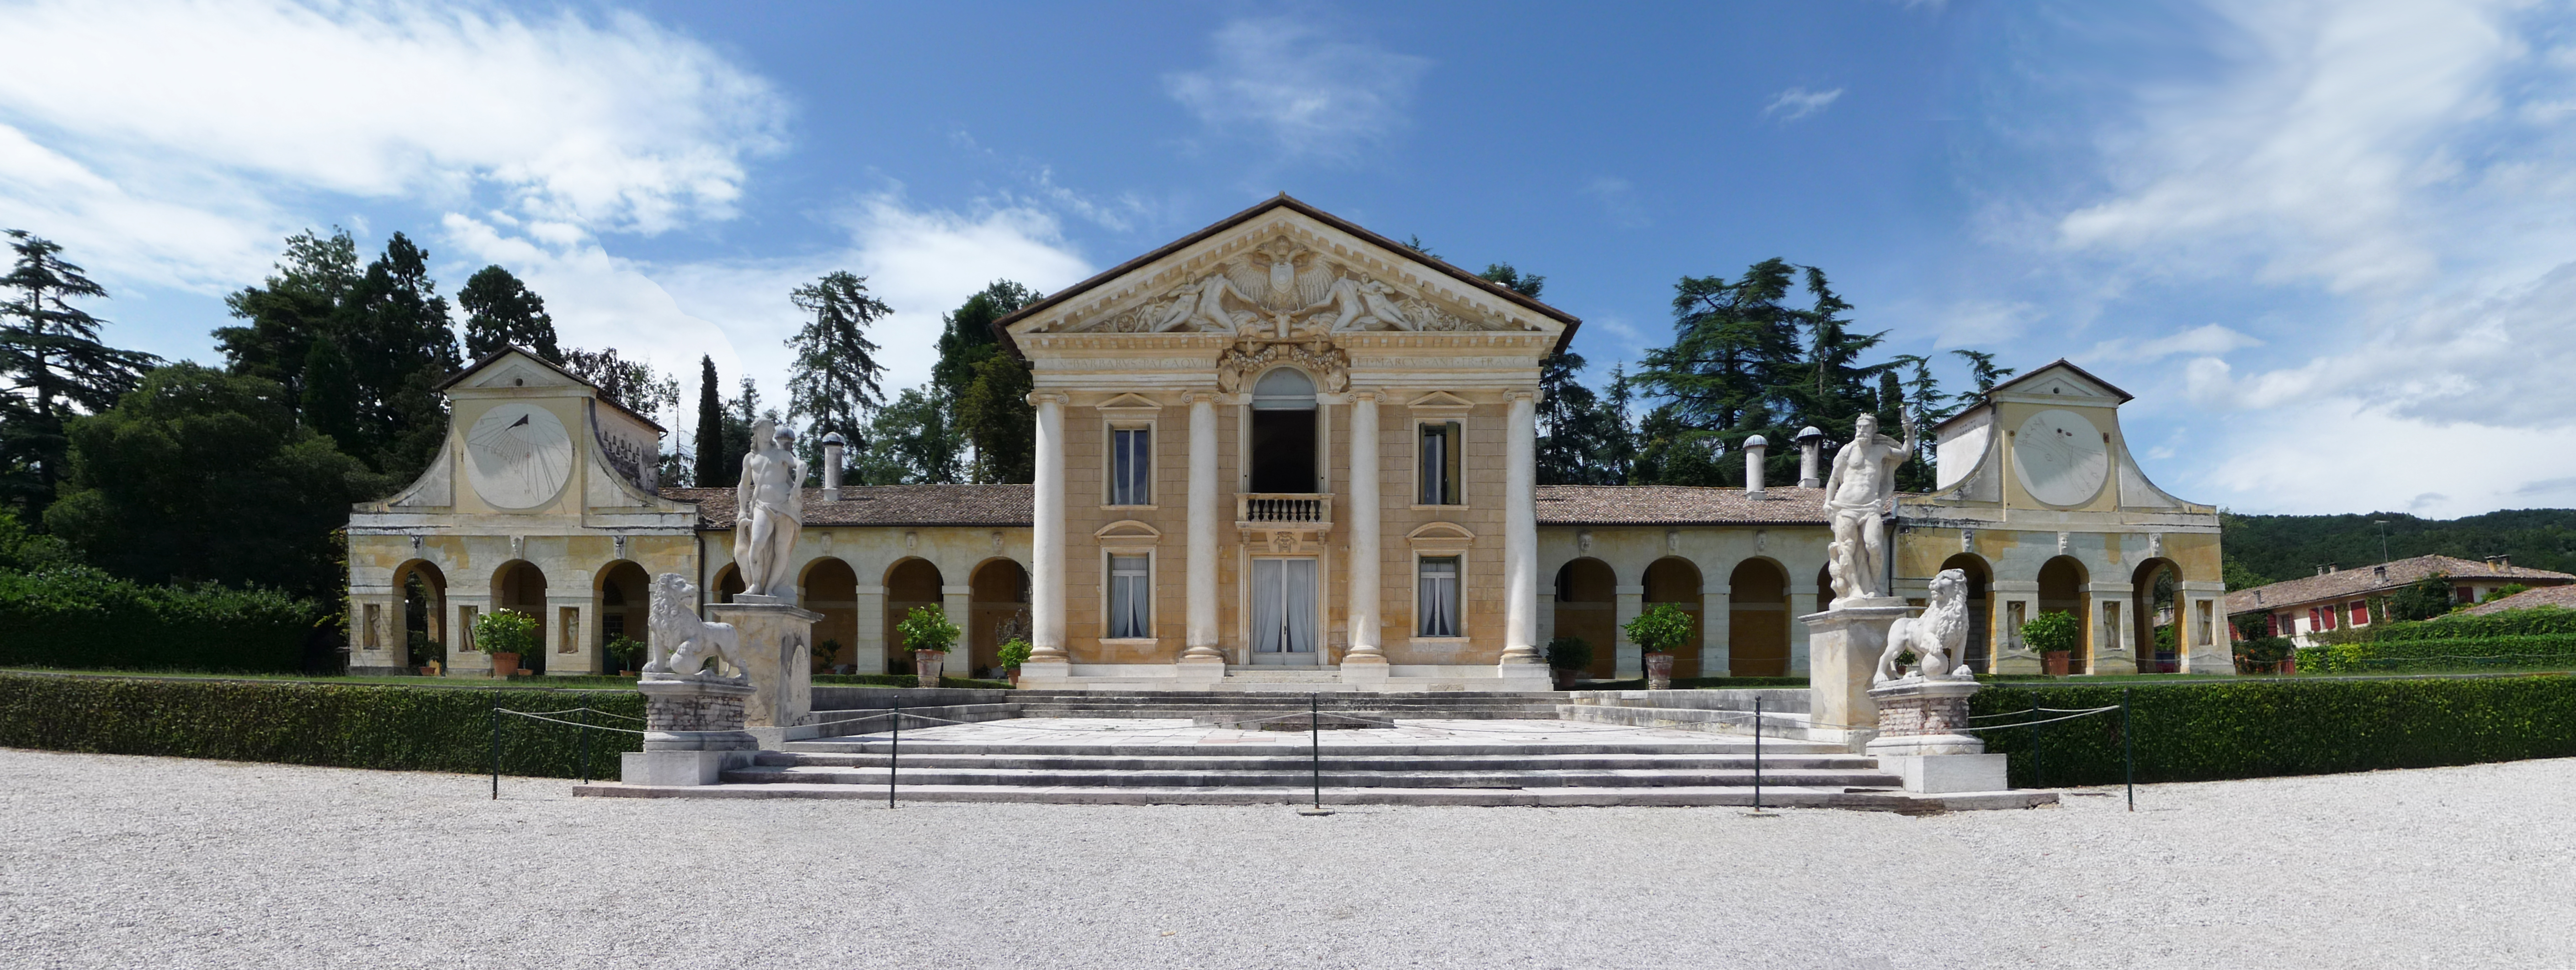 Description Villa Barbaro panoramica fronte Marcok.jpg